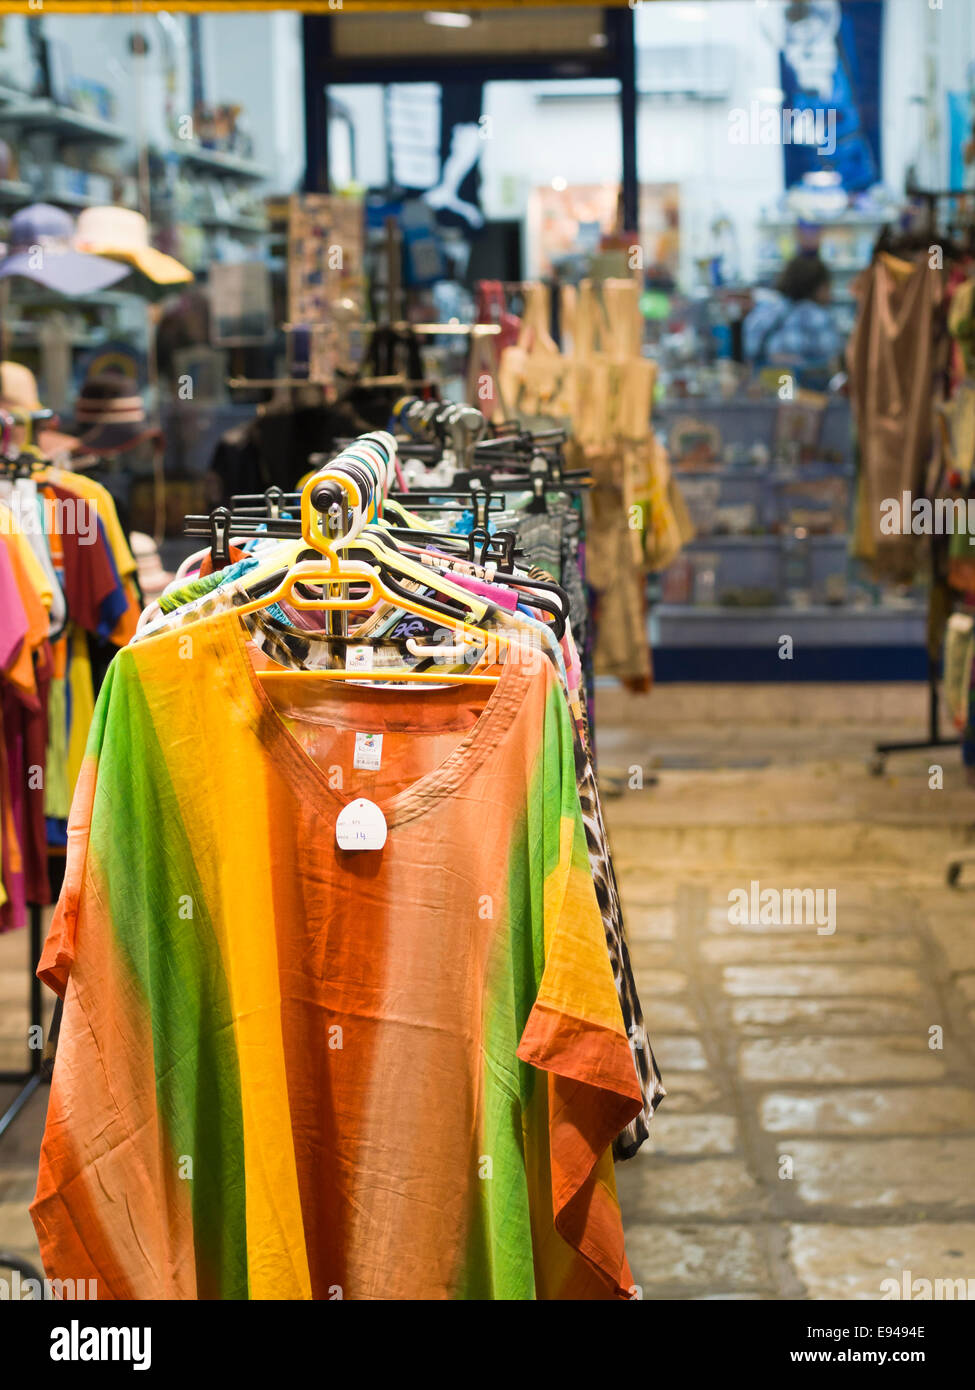 summer beach clothes and souvenirs for sale in an island holiday resort in Pythagorion, Samos Greece Stock Photo